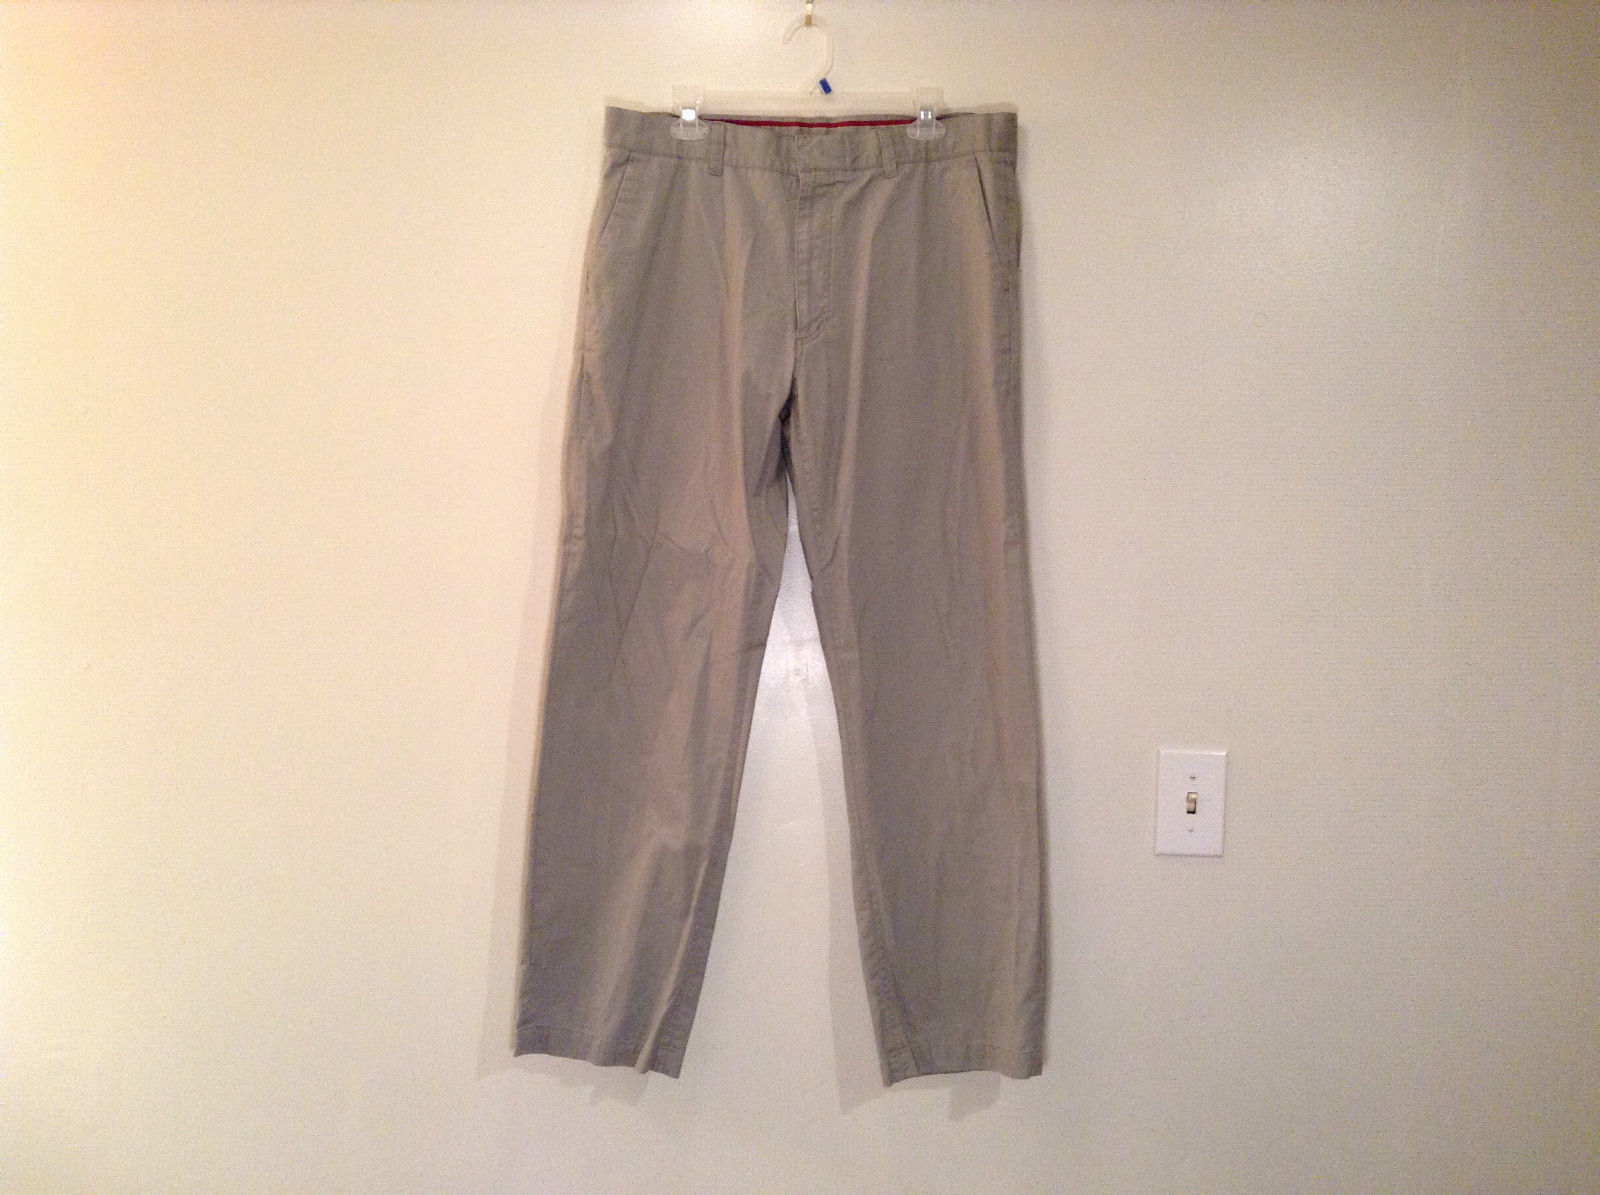 Khaki 100 Percent Cotton Axist Modern Fit Casual Pants Size 36 by 32